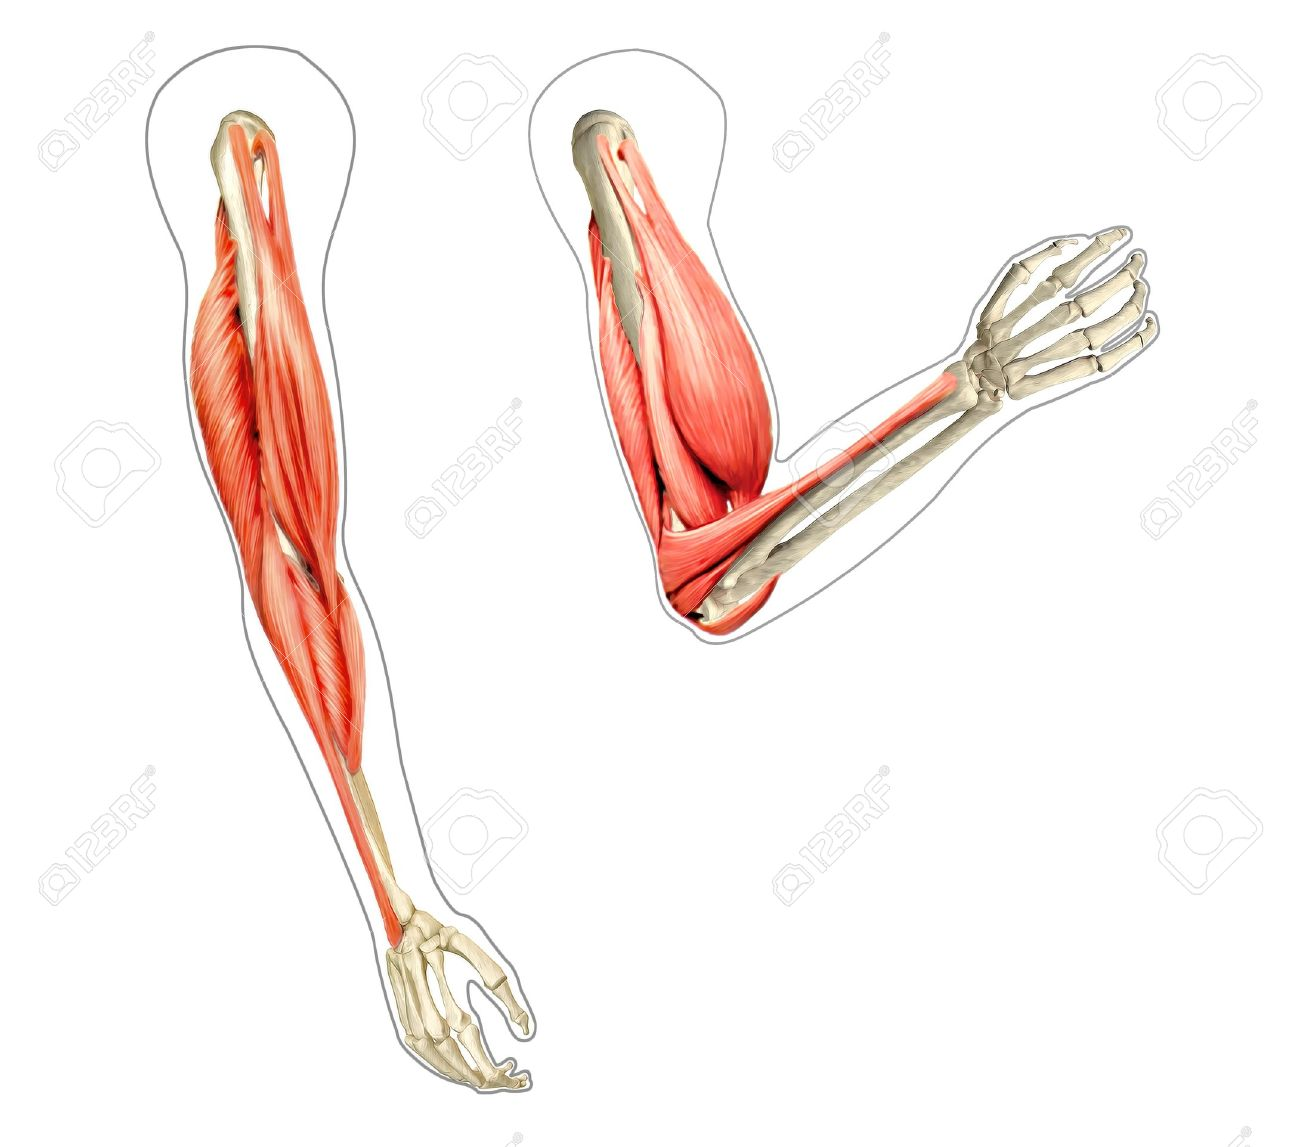 Human Arms Anatomy Diagram, Showing Bones And Muscles While Flexing ...